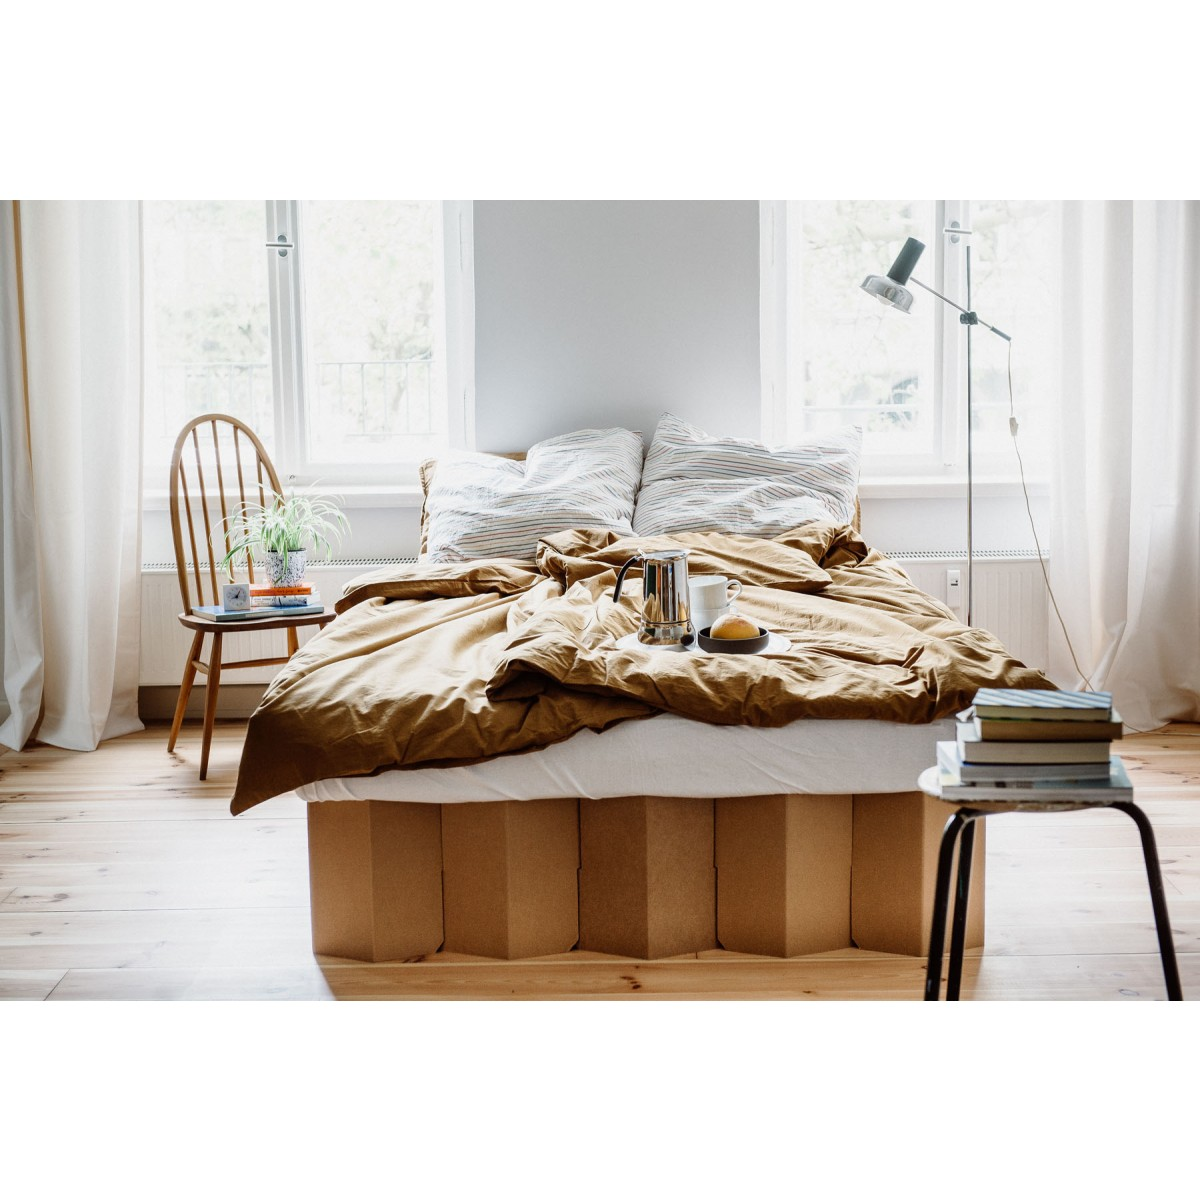 Das Bett 2.0 (natur) | ROOM IN A BOX